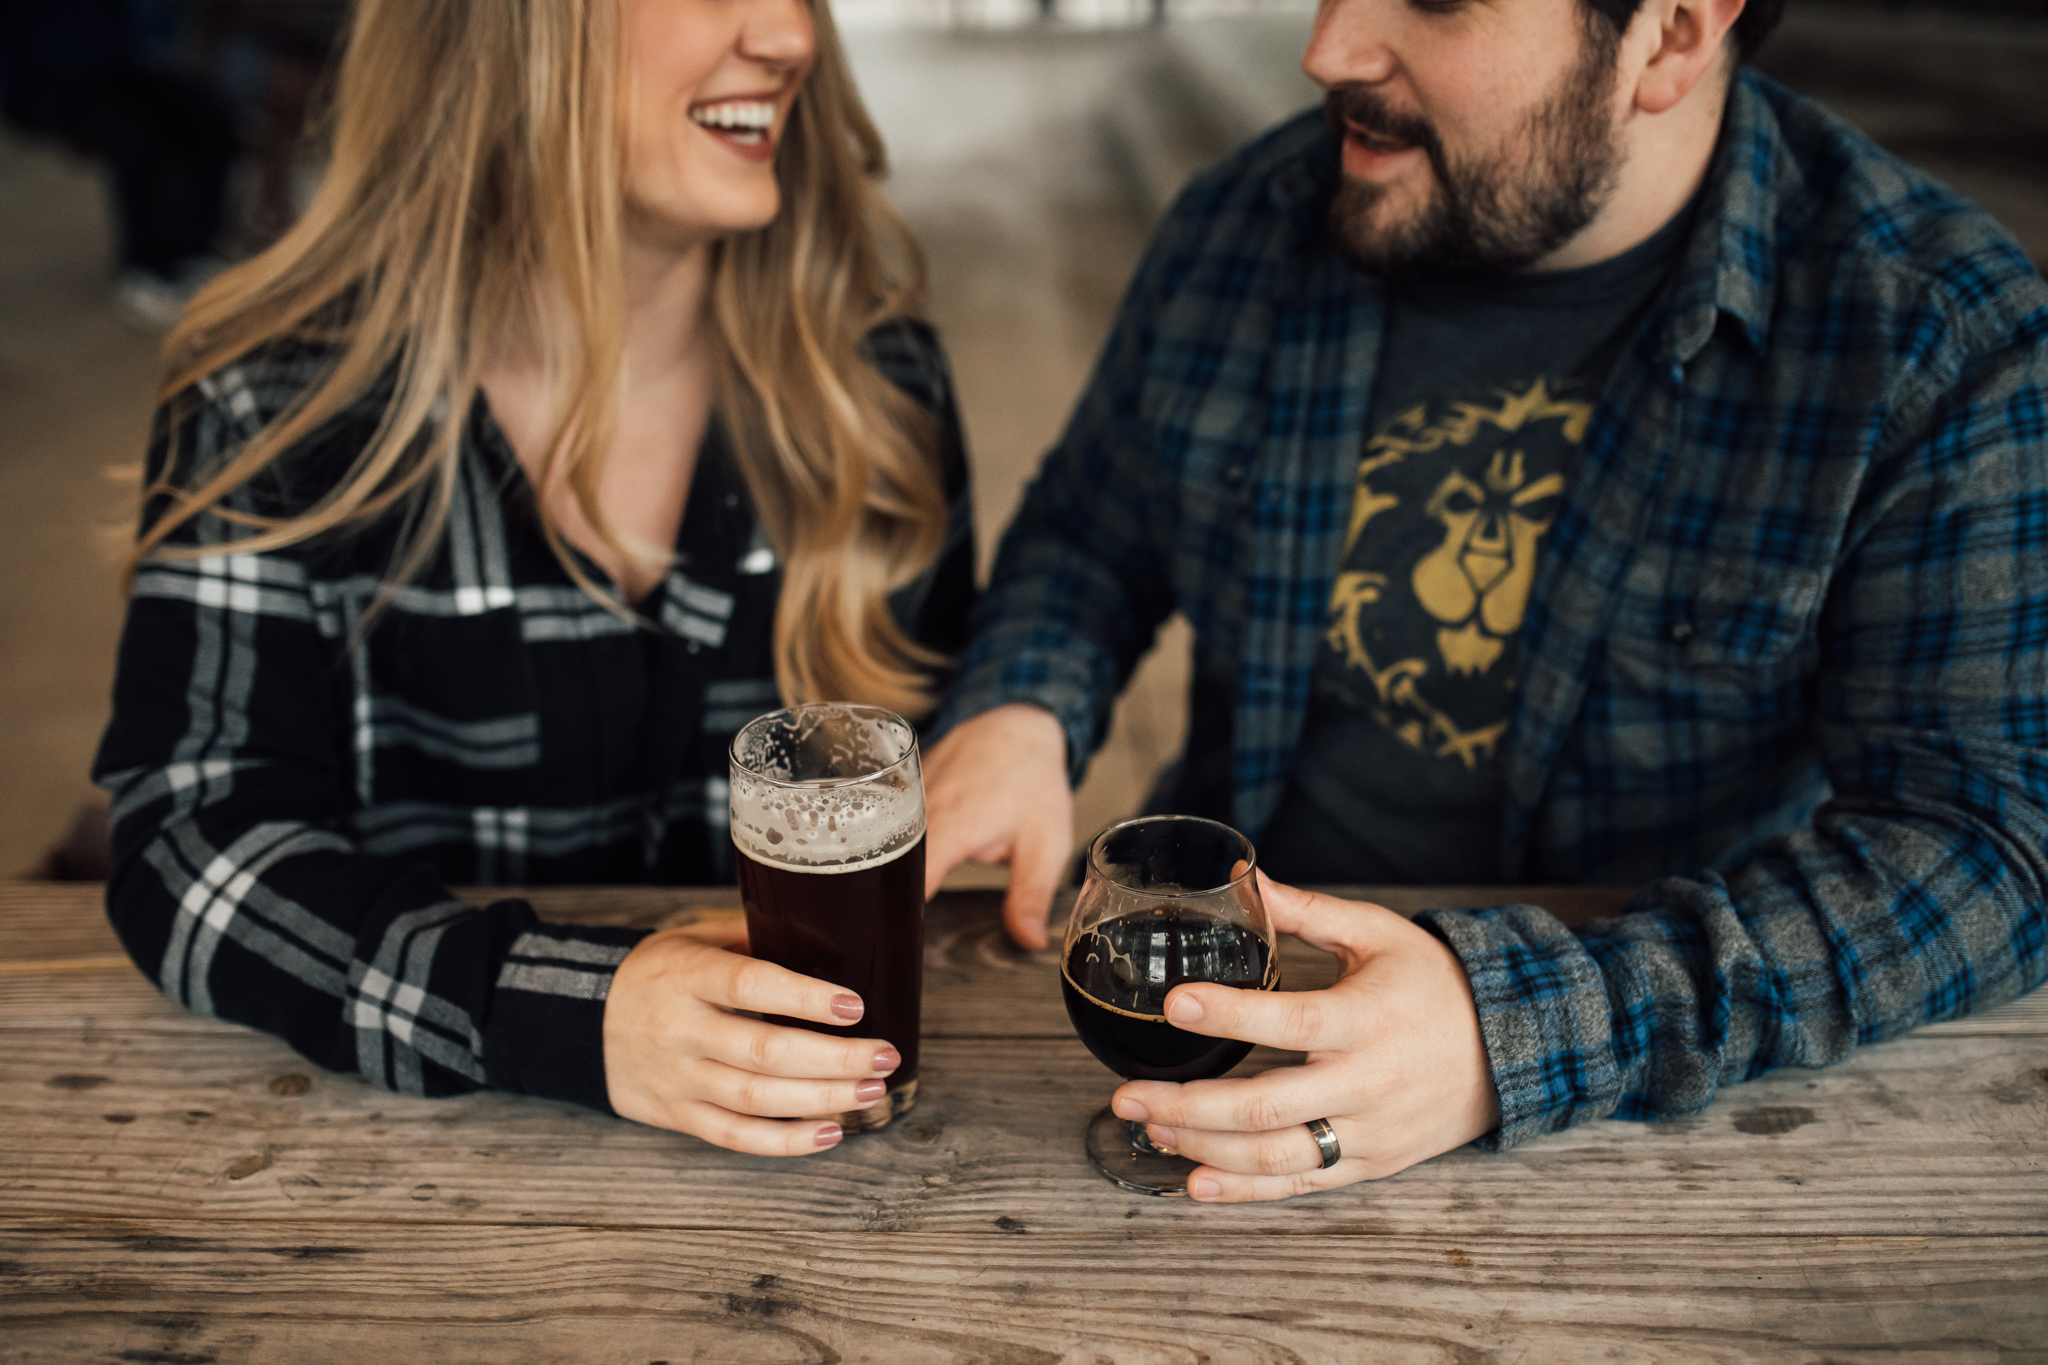 wiseacre-brewing-wedding-photographer-the-warmth-around-you-cassie-cook-photography (7 of 64).jpg